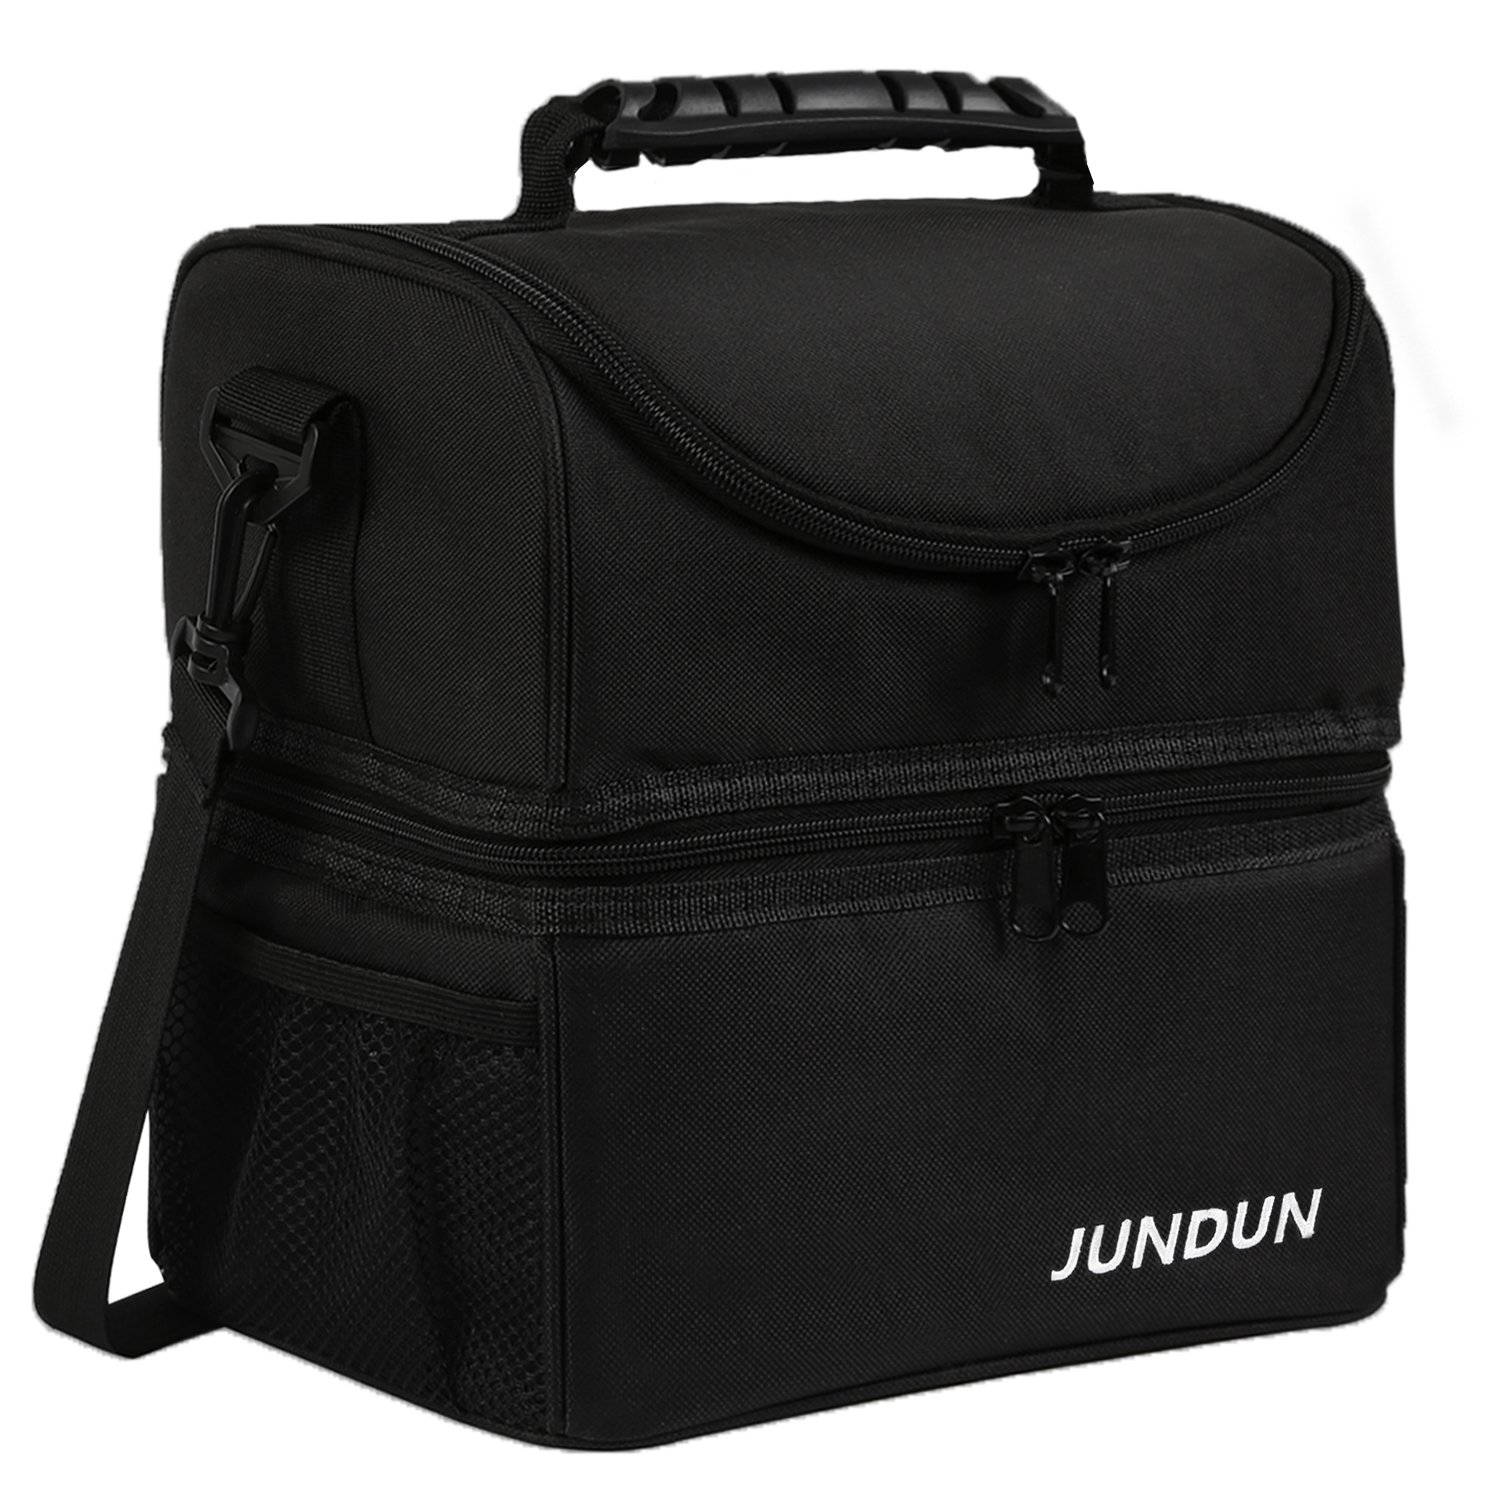 JUNDUN Lunch Bag Double Insulated Cooler Tote Lunch Box with Shoulder Strap for Men &Women (Gold)